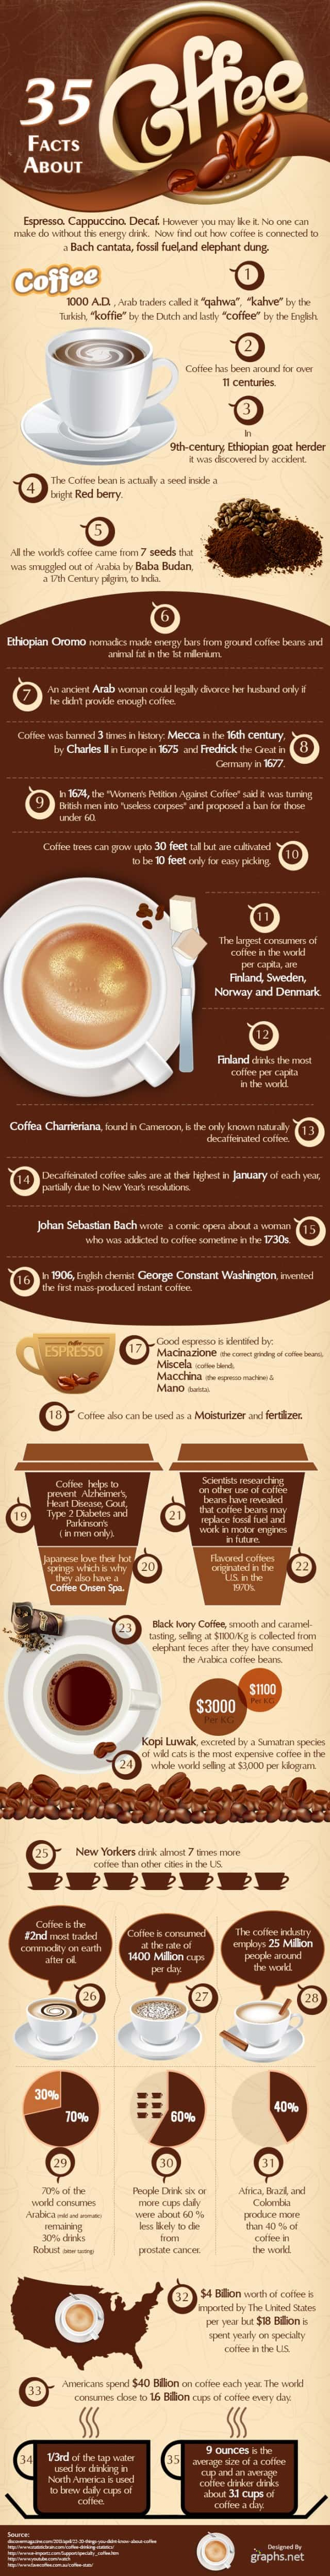 35 Interesting Facts About Coffee